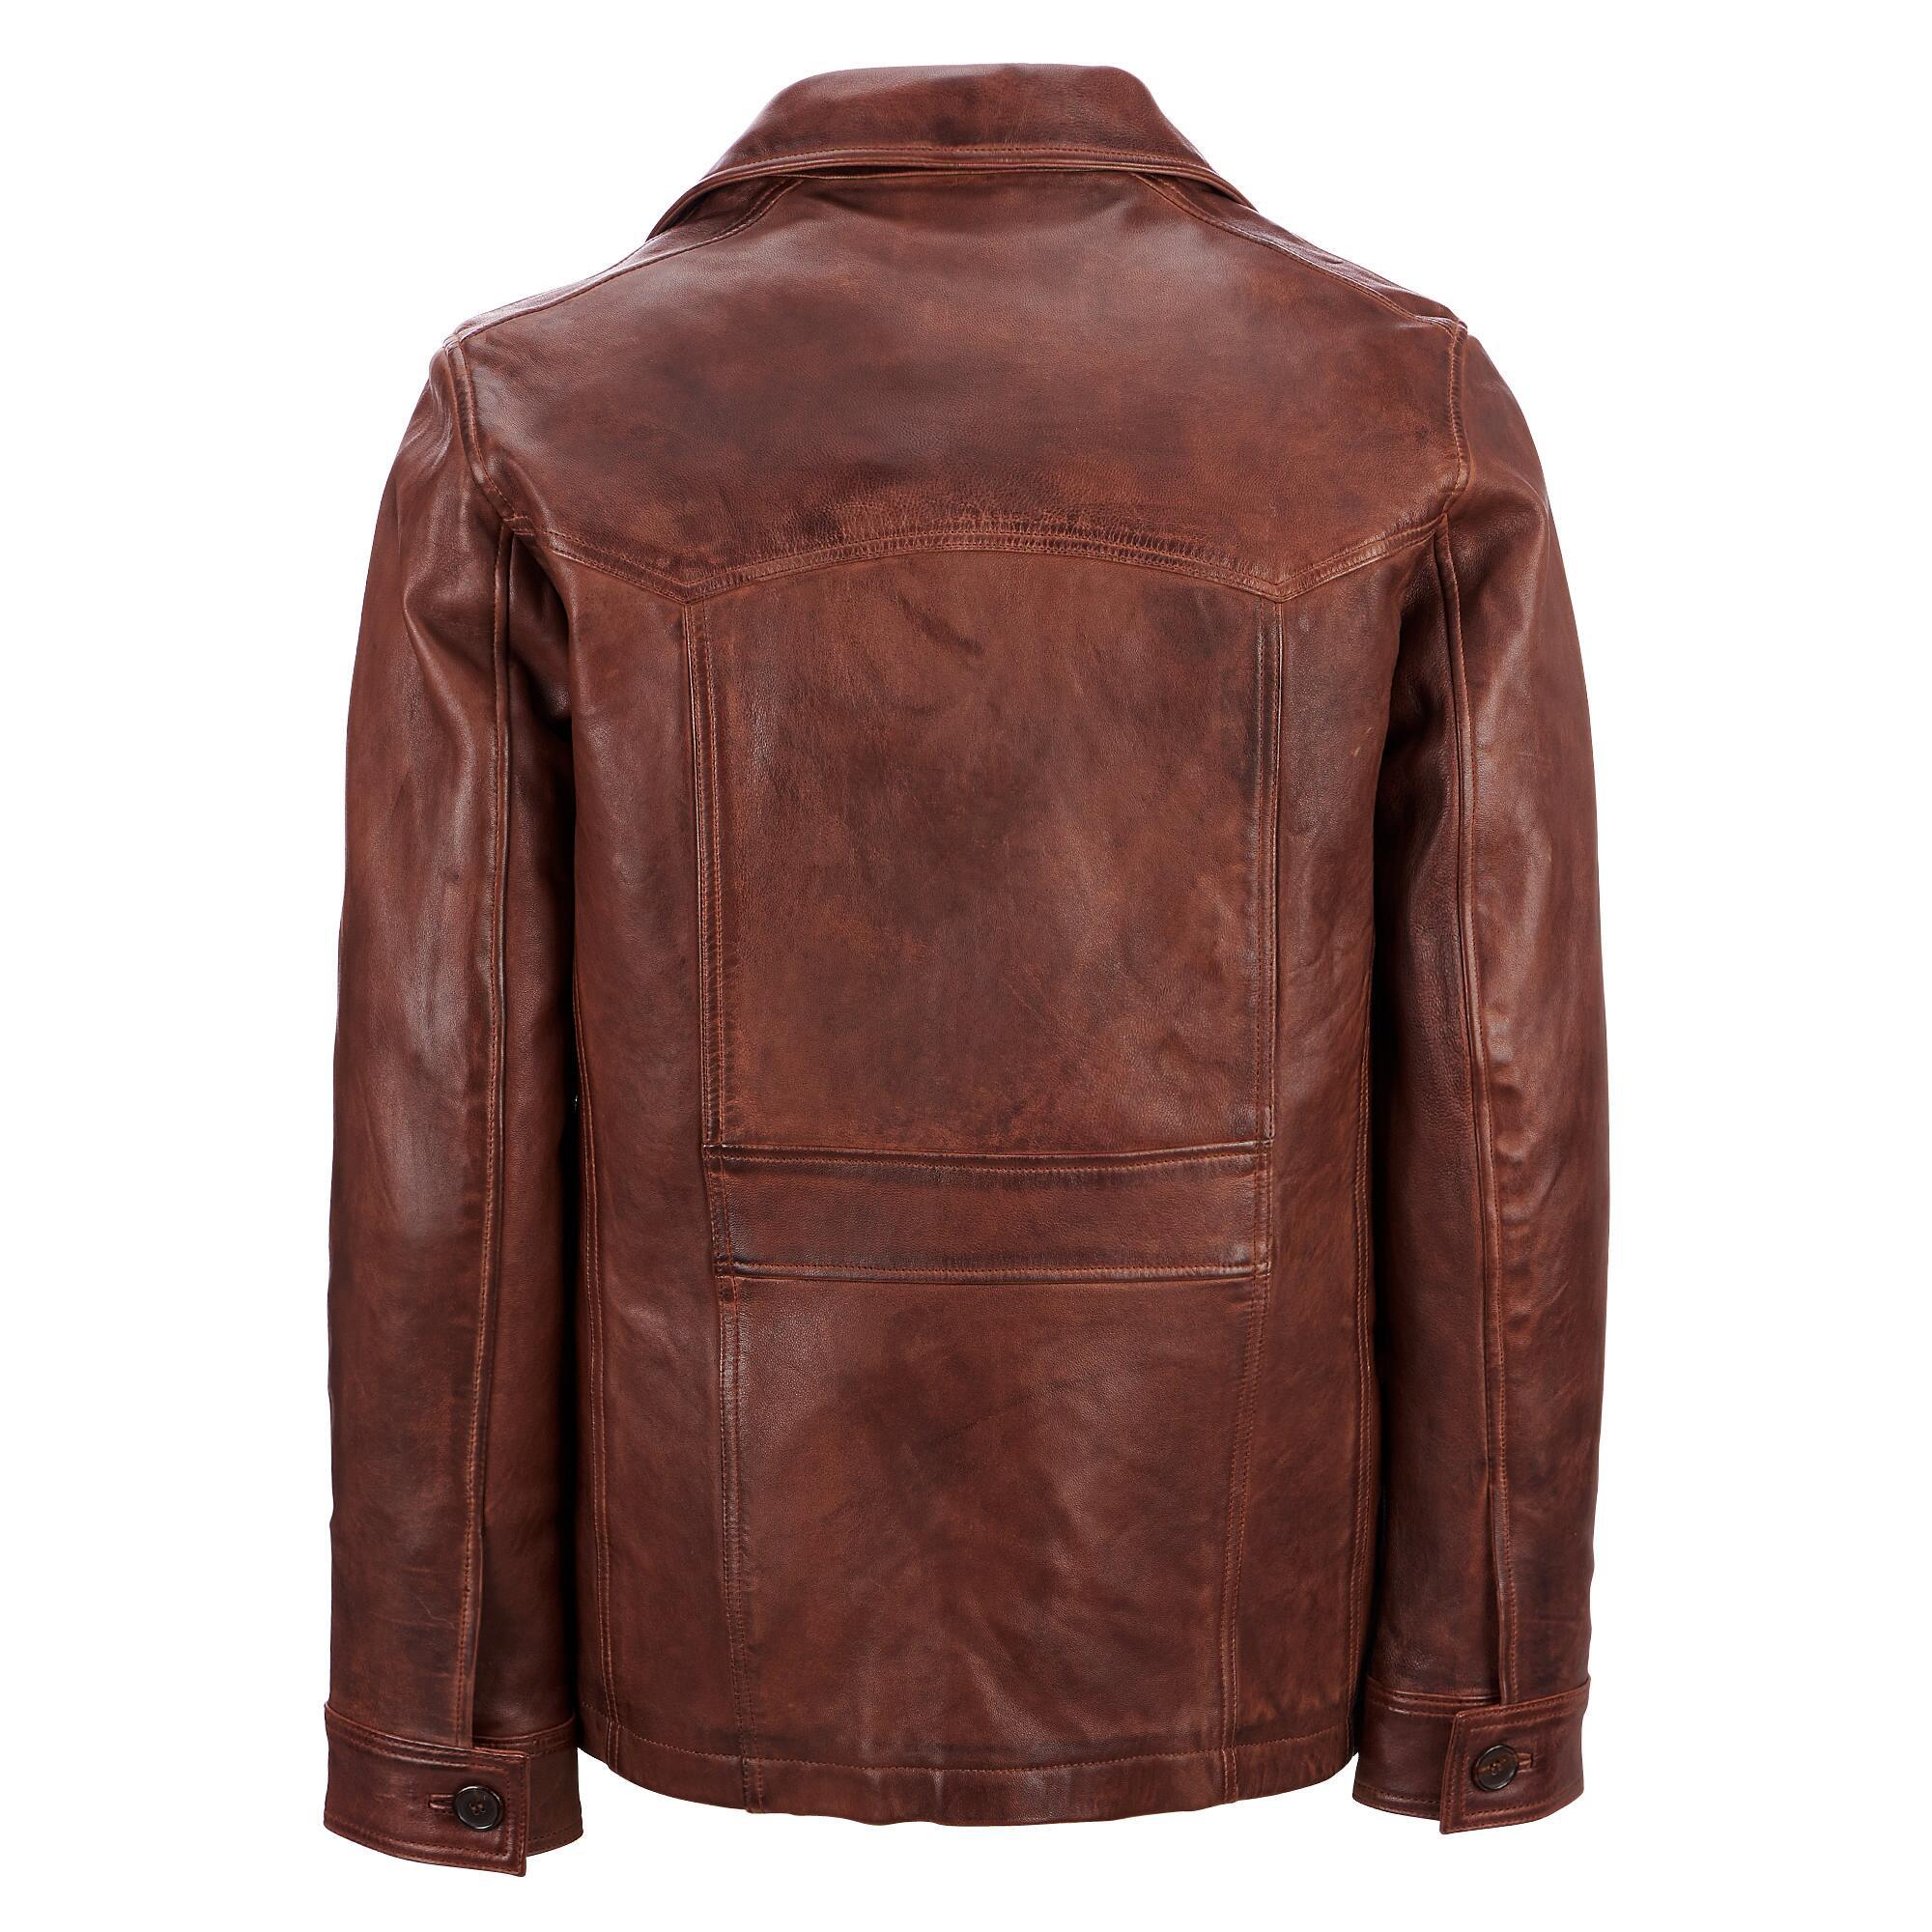 leather r free product today jacket rug clothing shoes shipping o overstock rugged men mens s